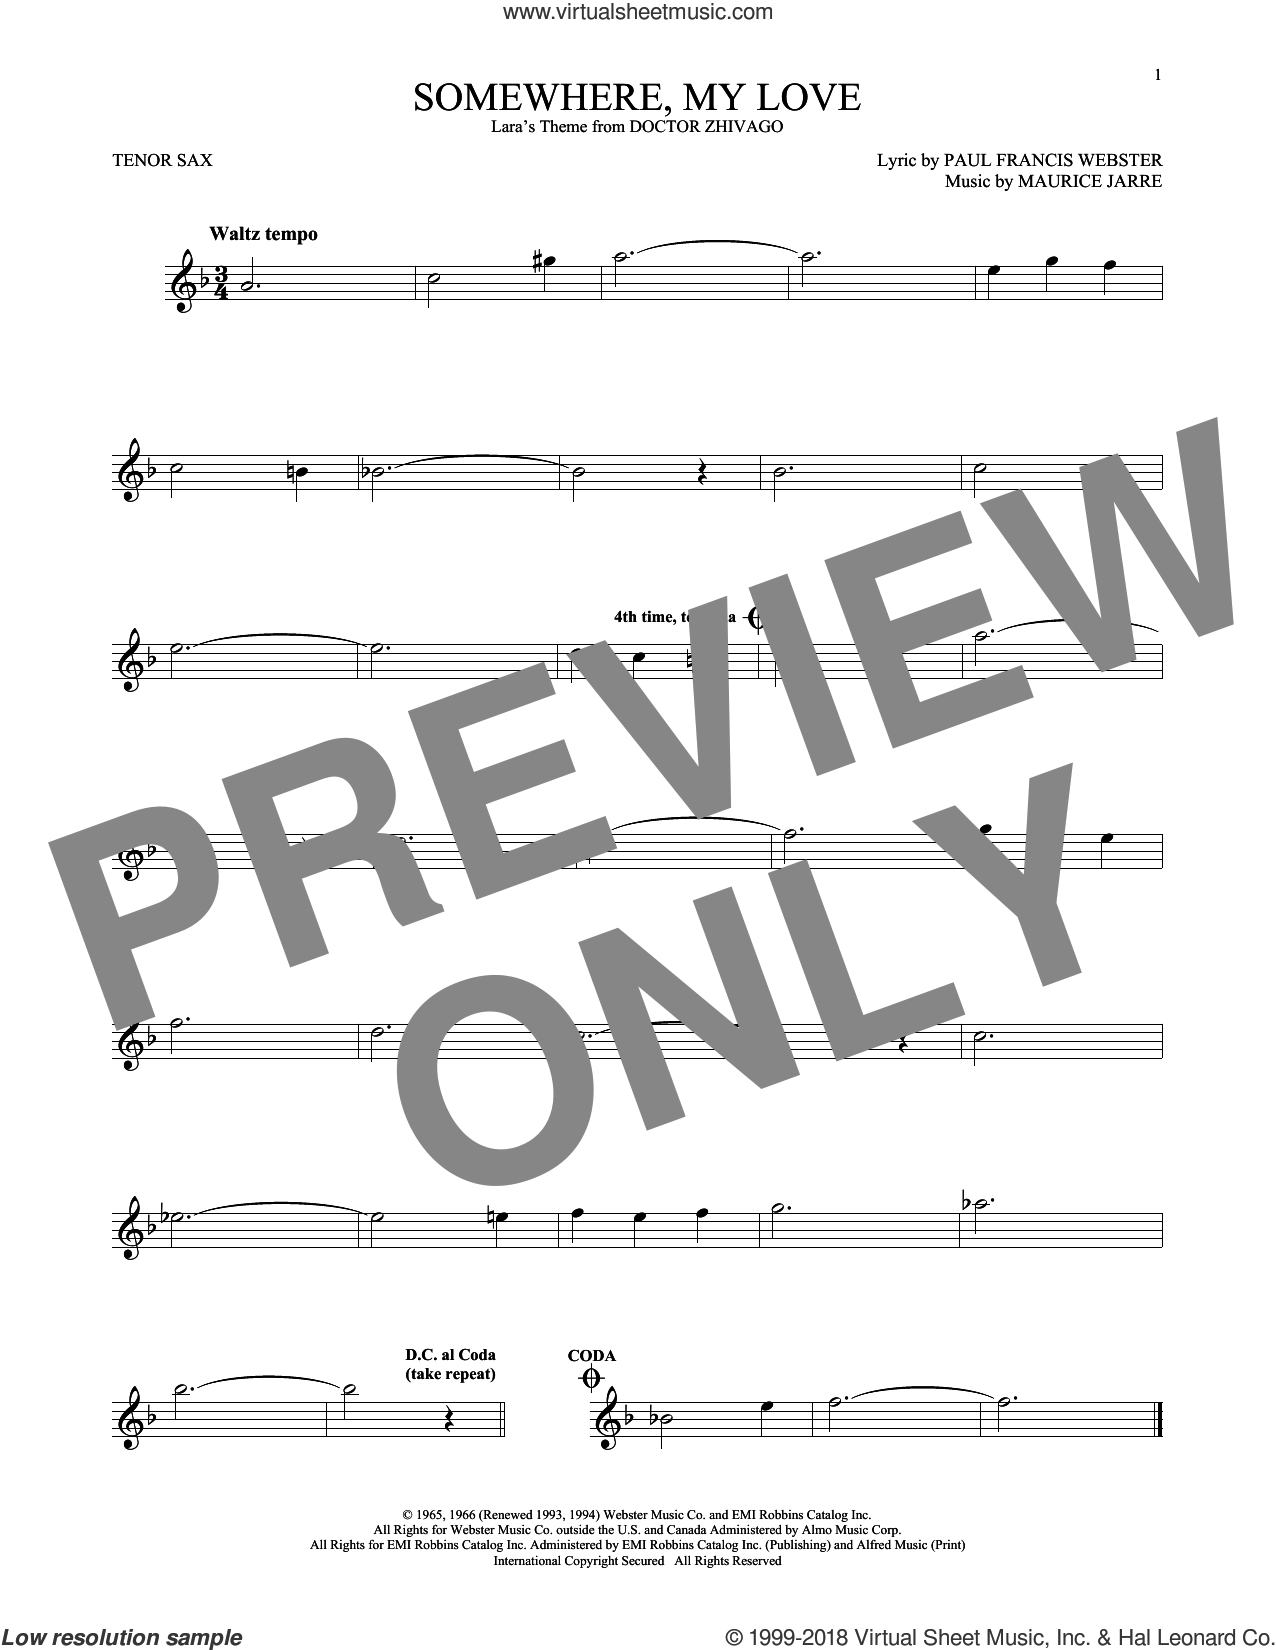 Somewhere, My Love sheet music for tenor saxophone solo by Paul Francis Webster and Maurice Jarre, intermediate skill level